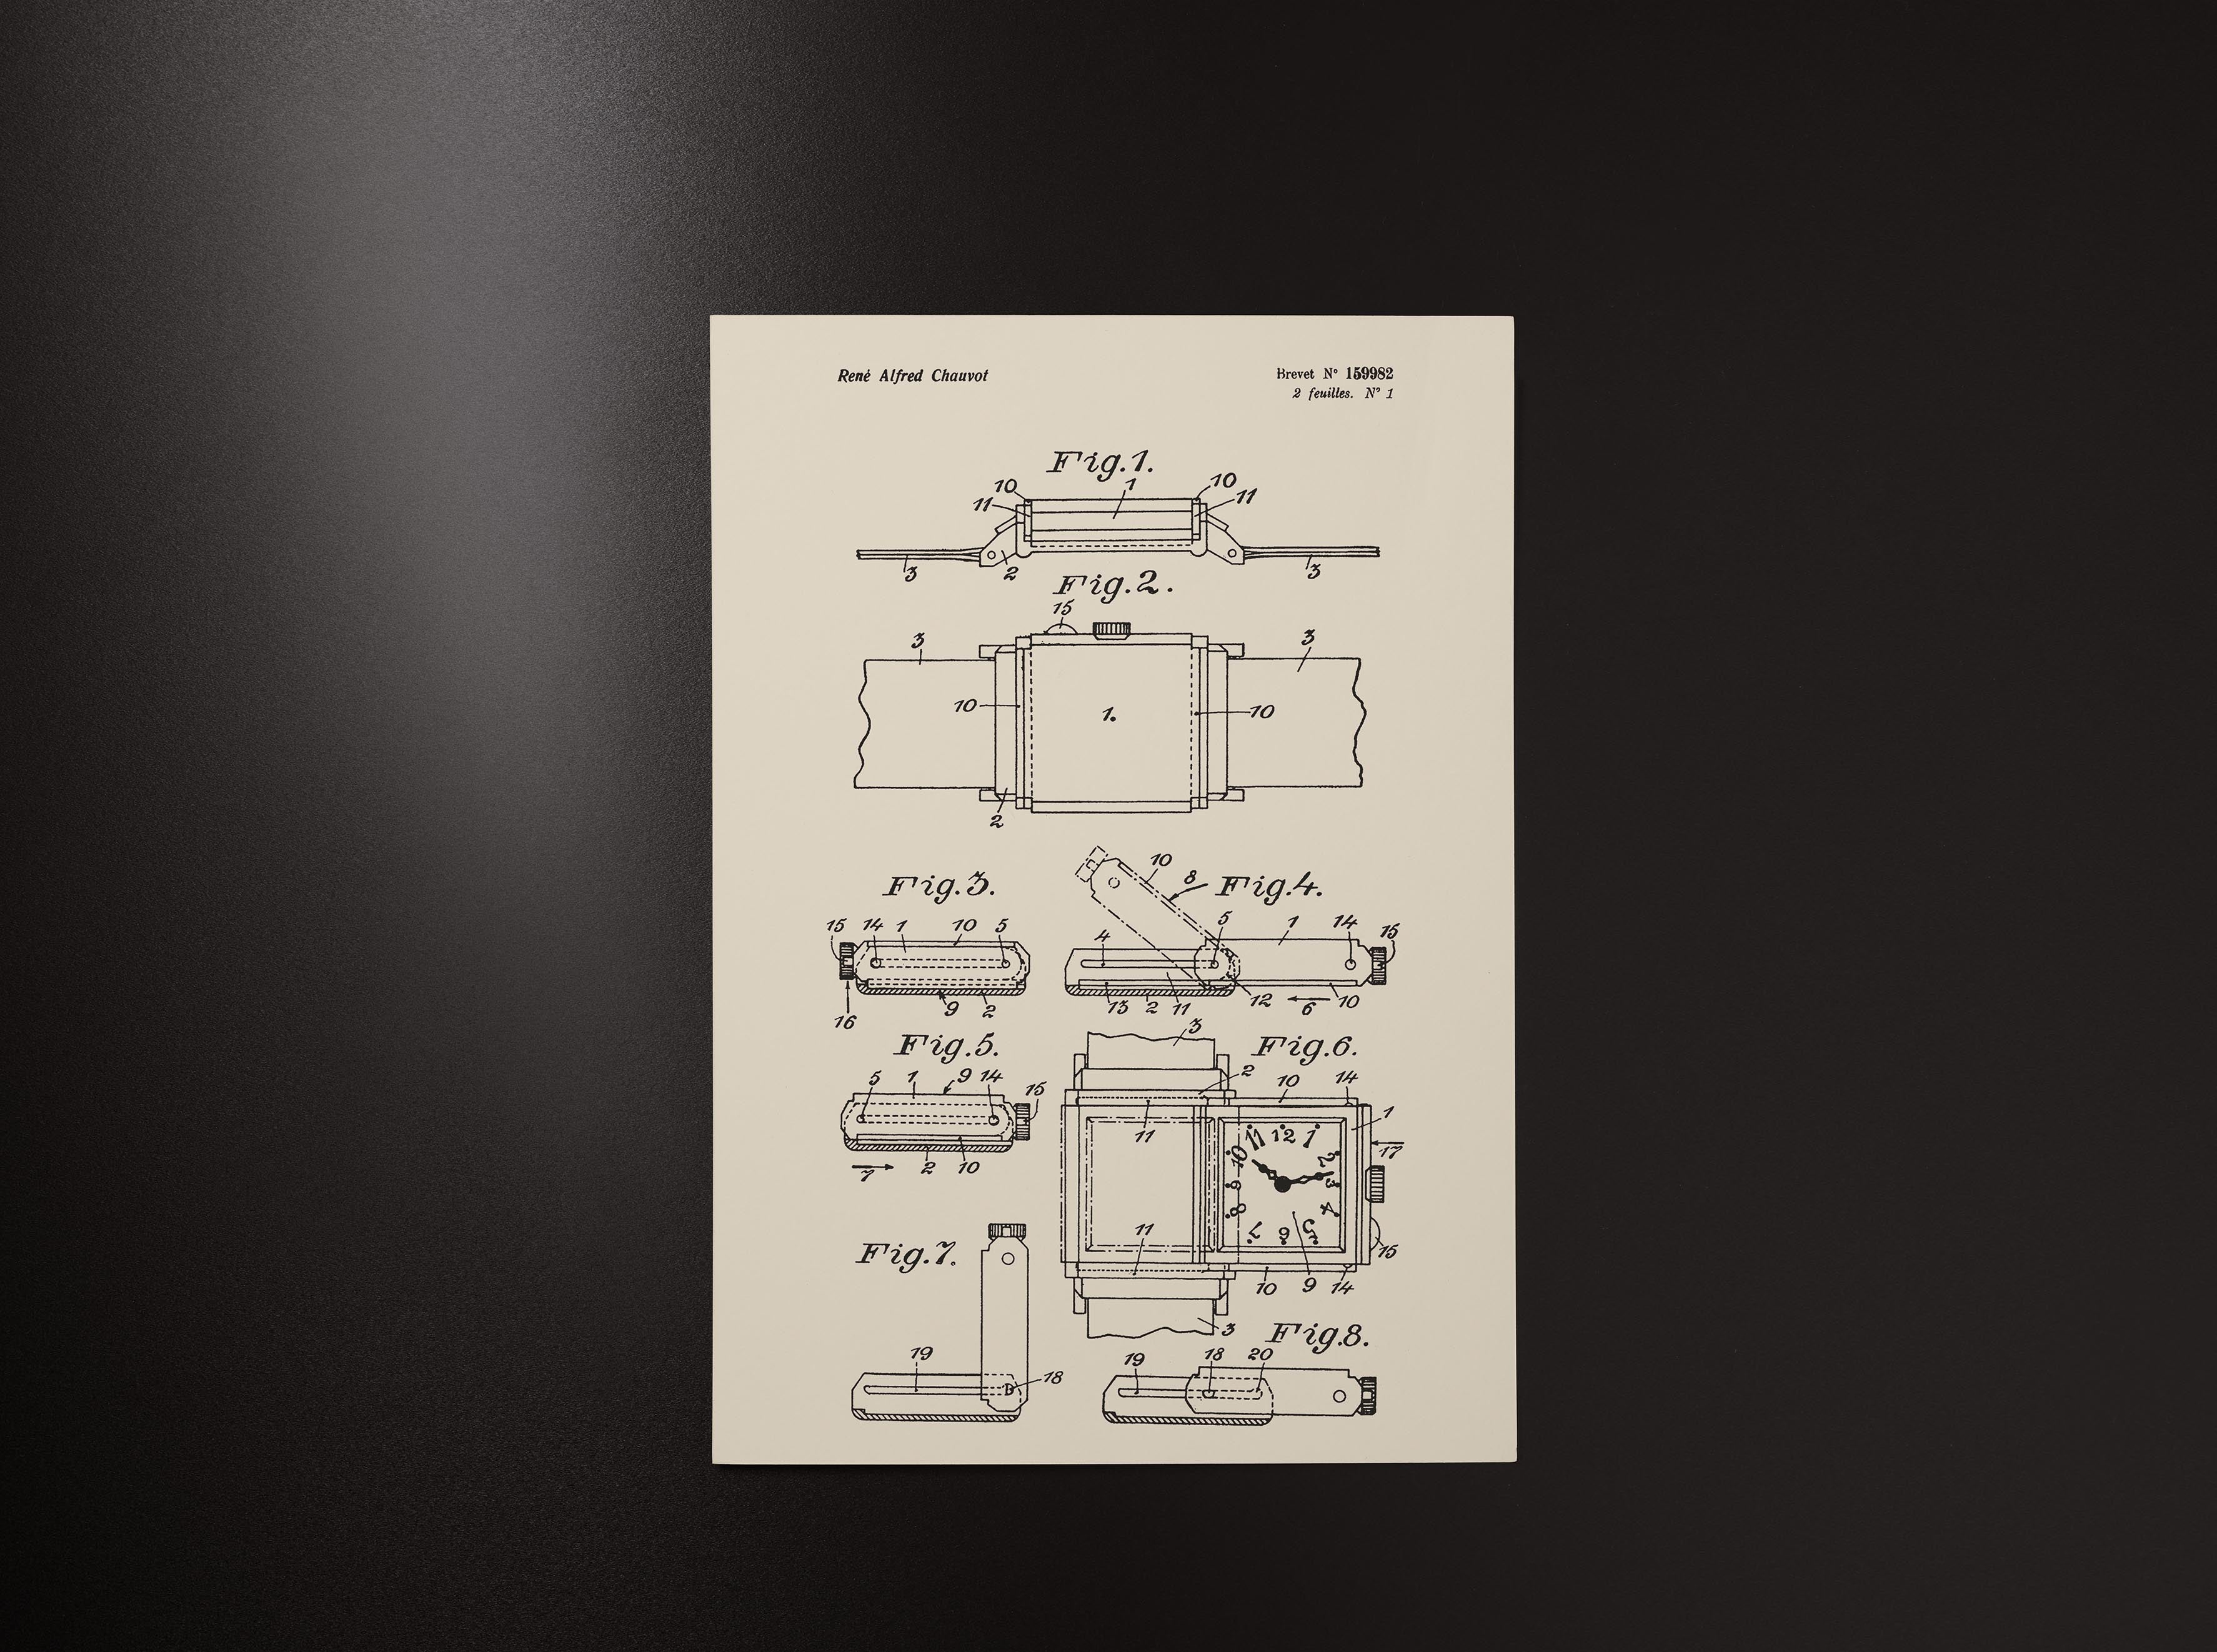 Original patent for Jaeger-LeCoultre Reverso case drawings in The Flippin' History of the Reverso for A Collected Man